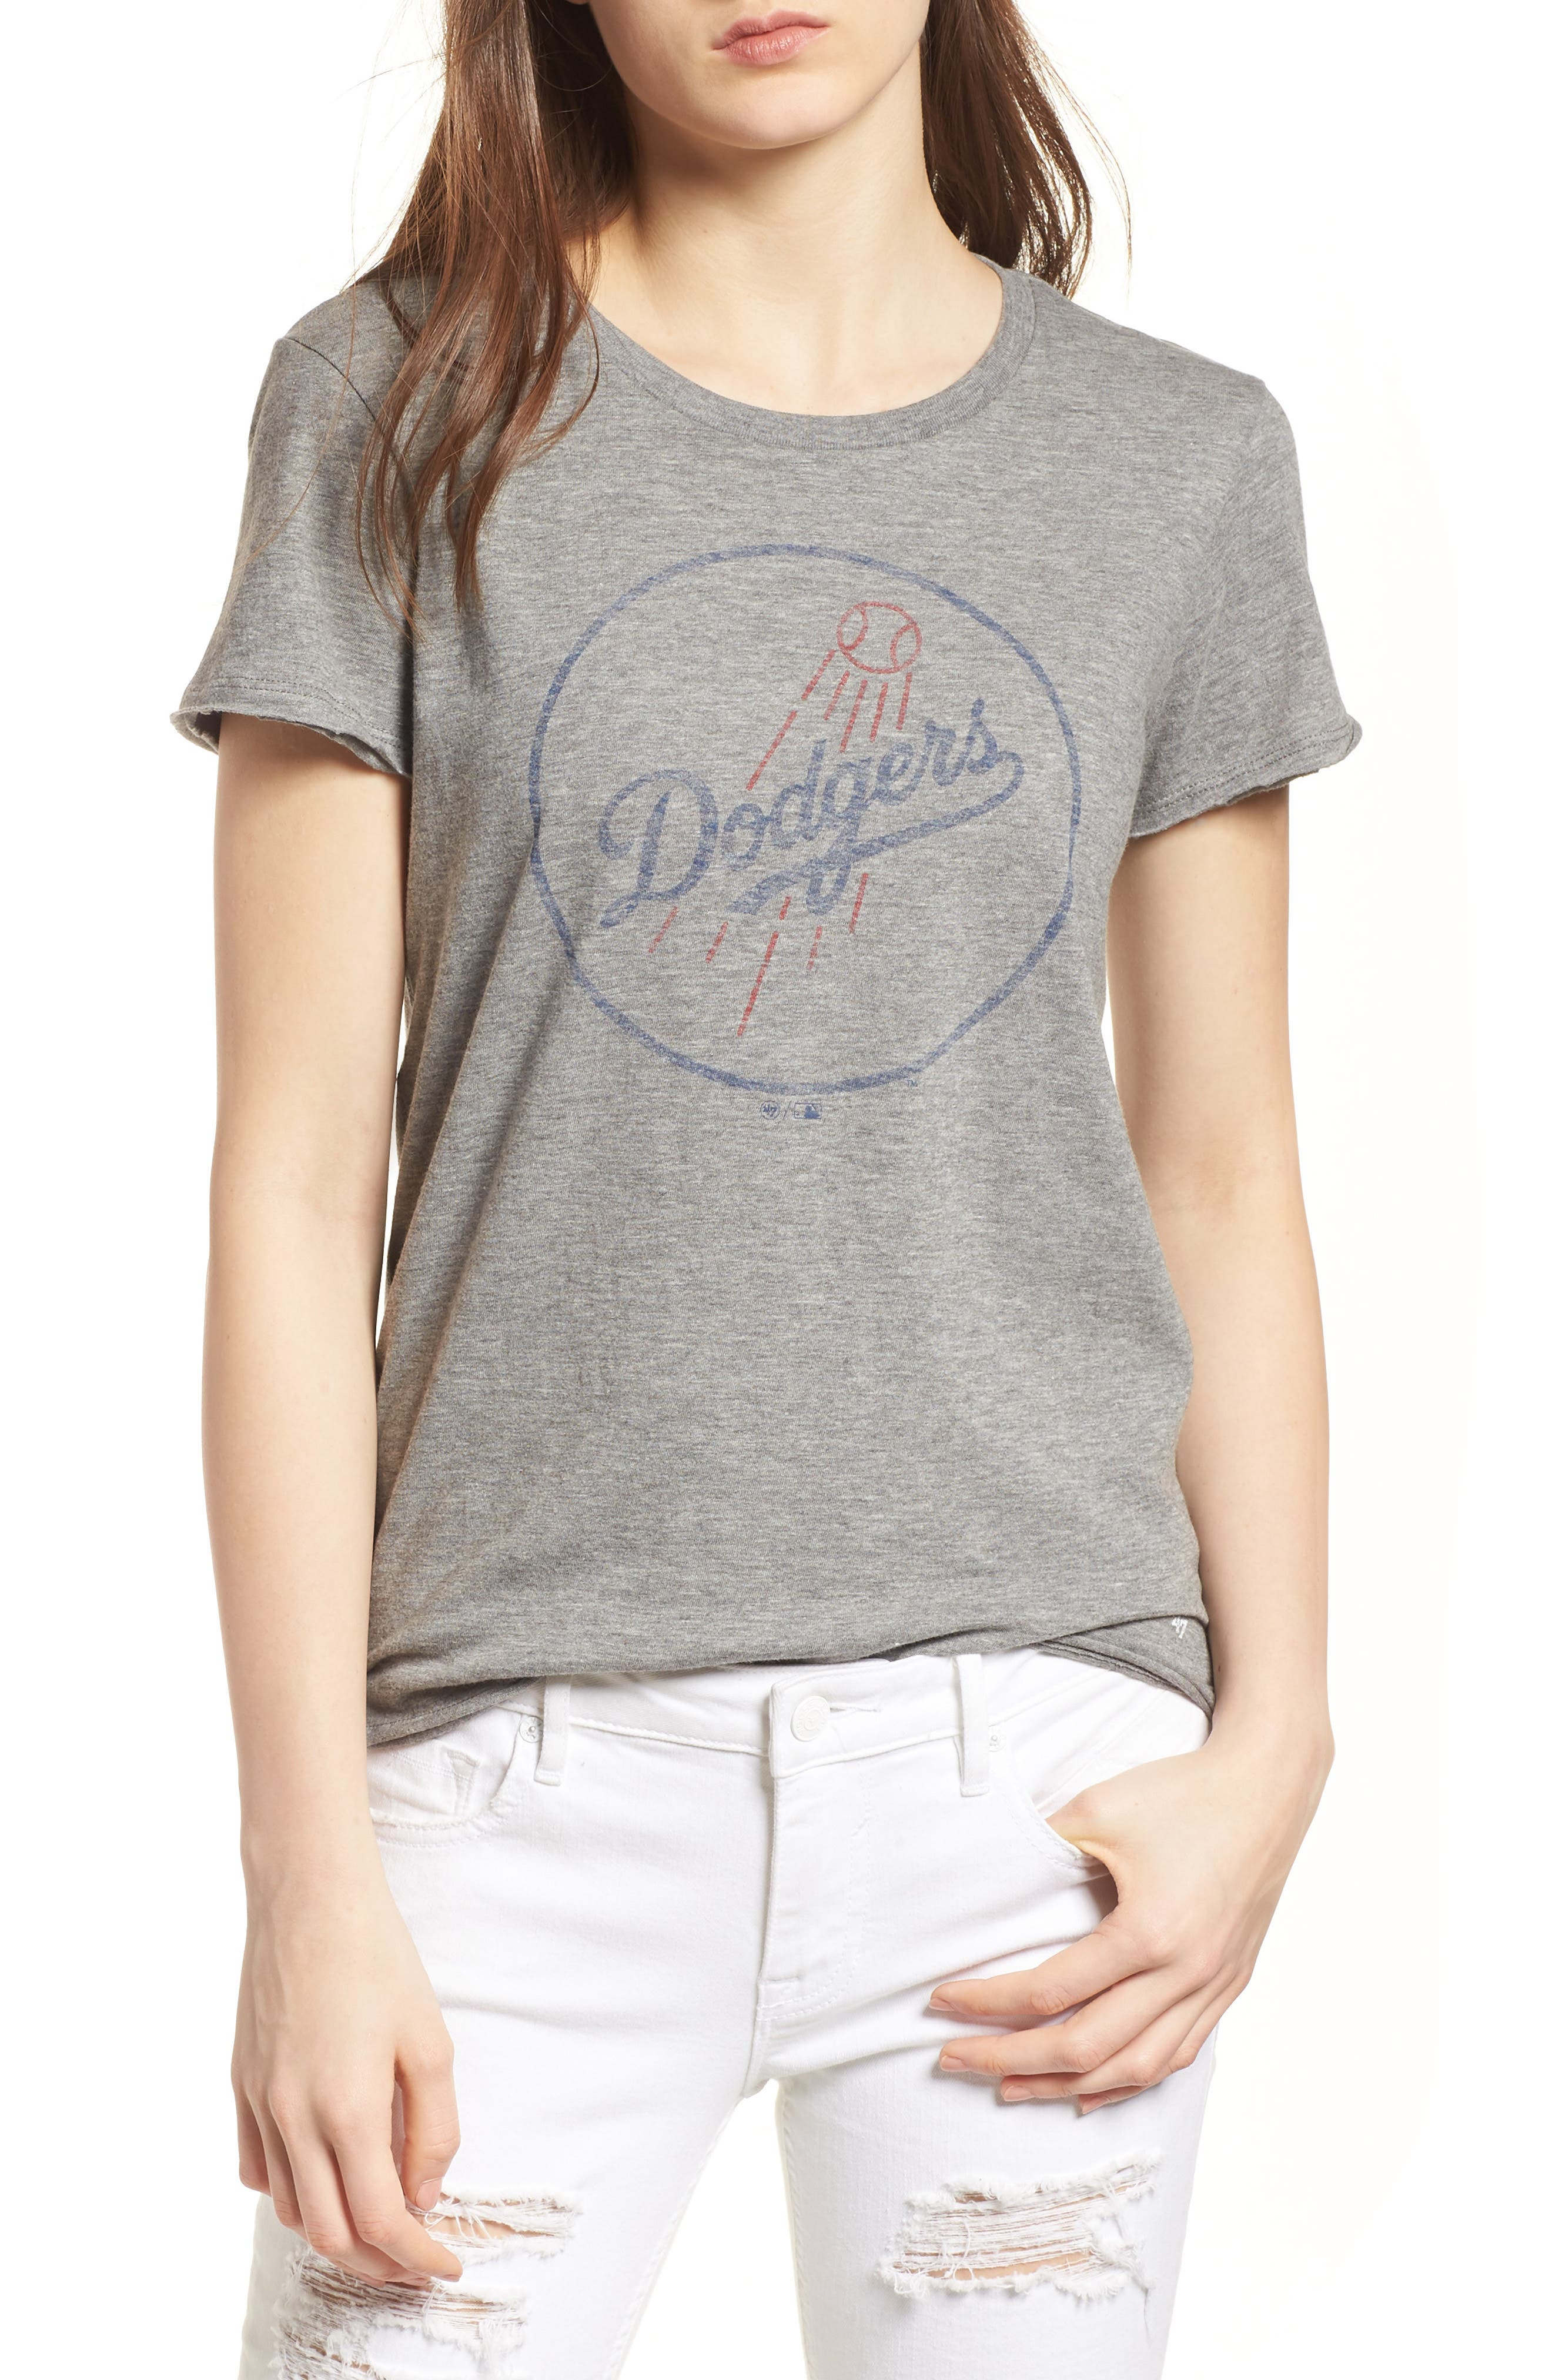 Los Angeles Dodgers Fader Letter Tee,                             Main thumbnail 1, color,                             Slate Grey